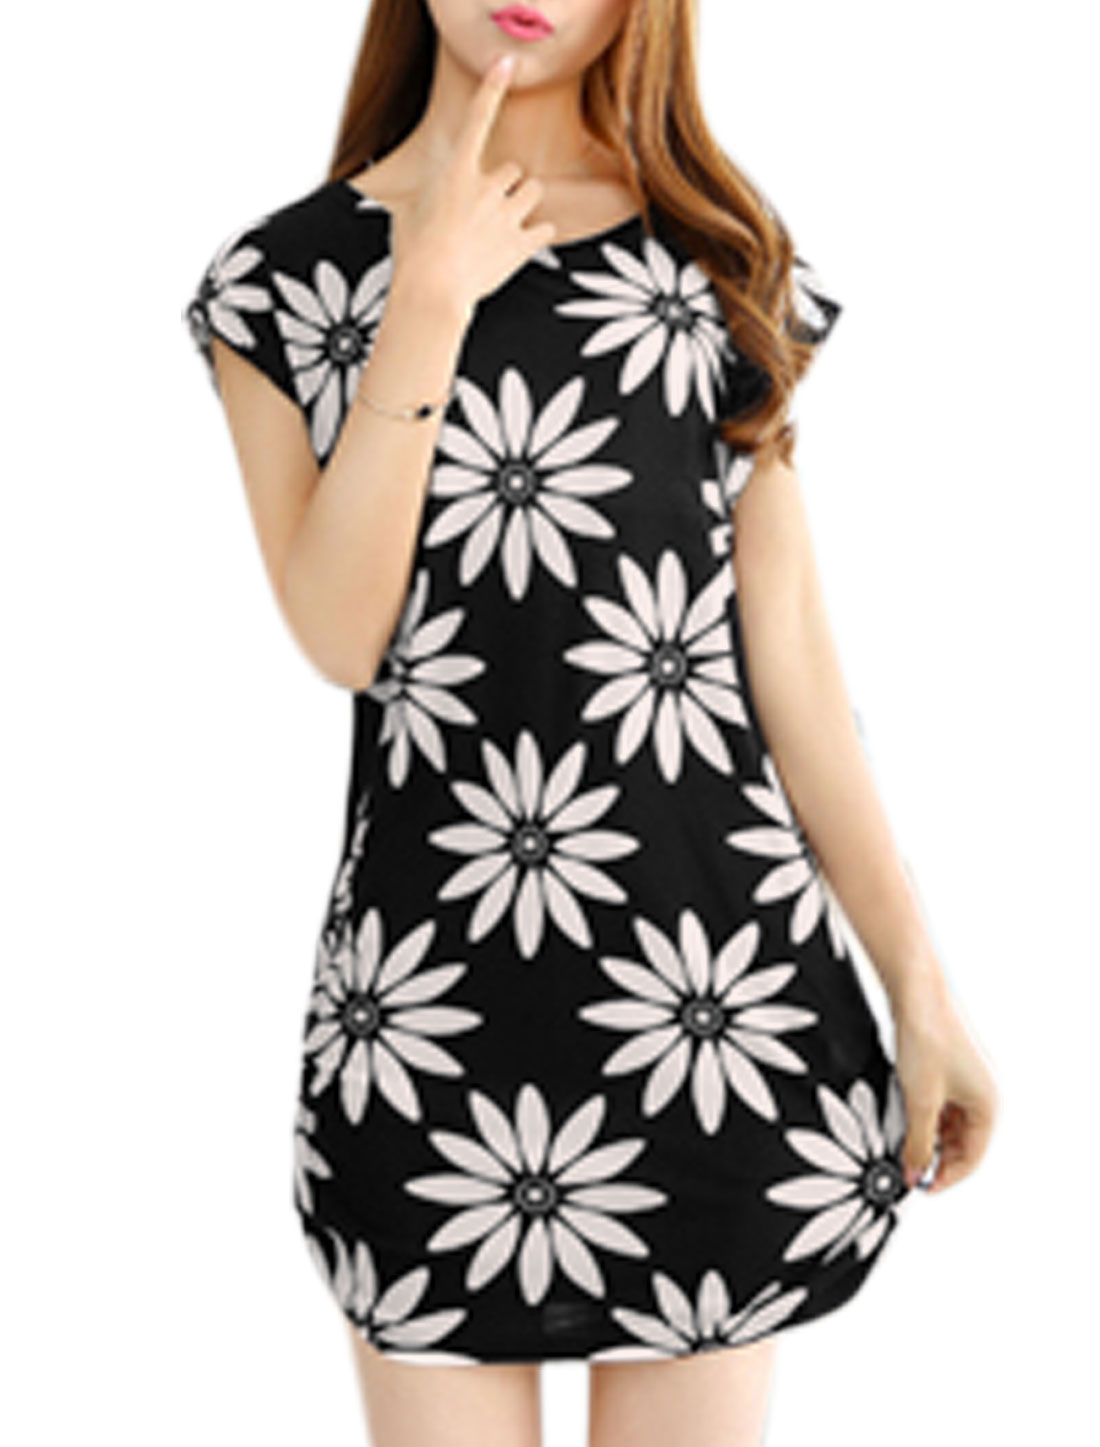 Women Short Sleeve Flower Print Sides Shirred Summer Dresses Black Beige S